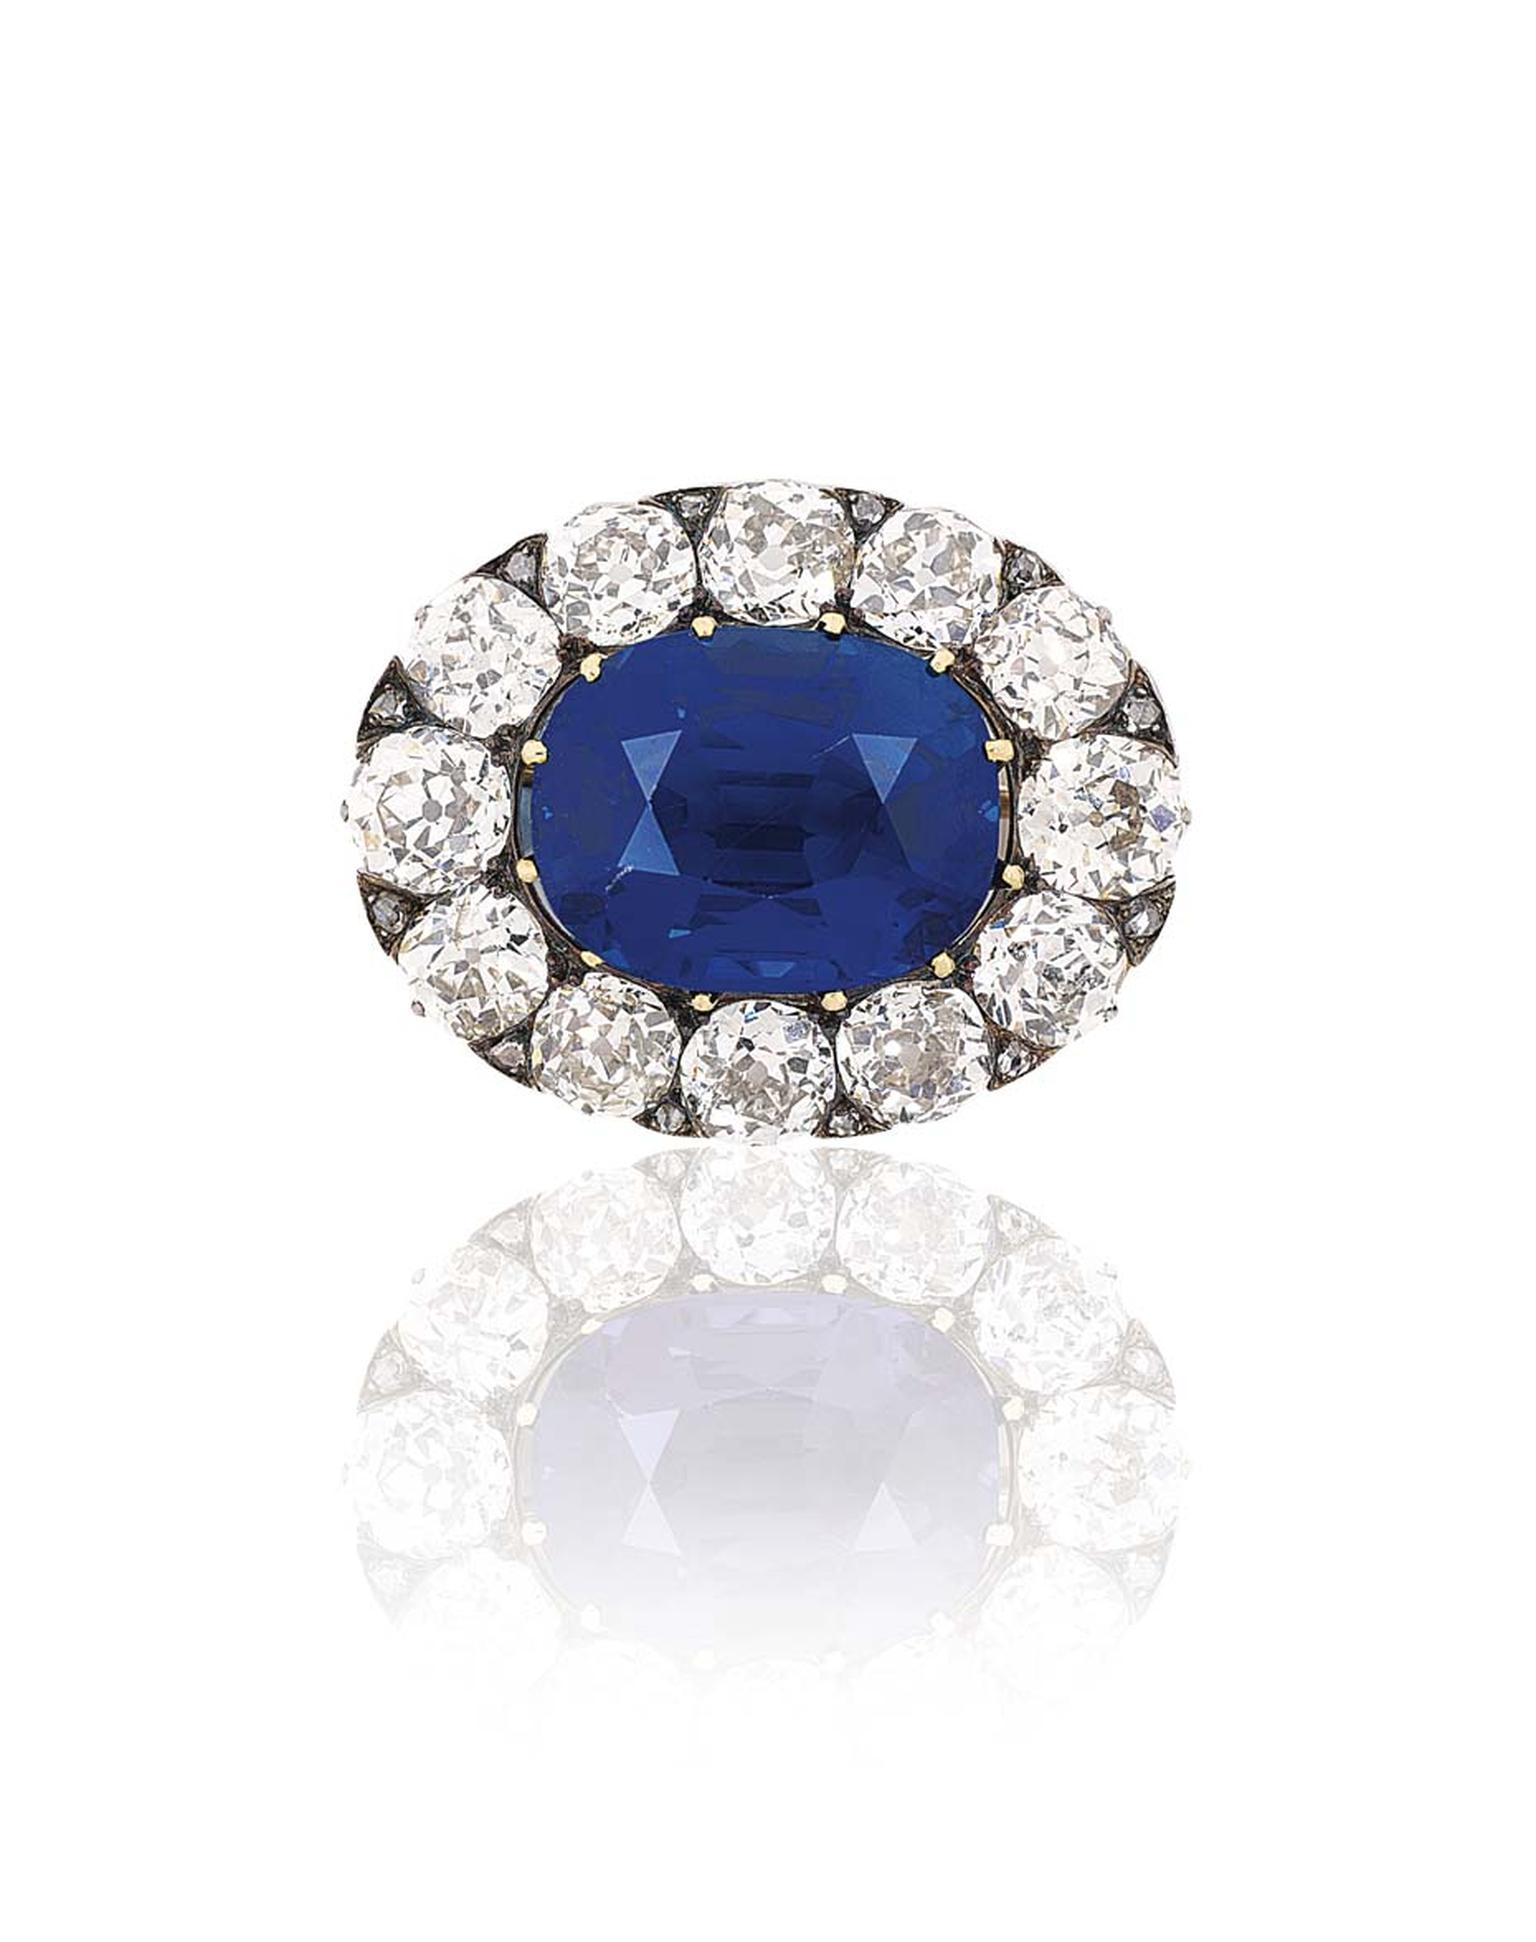 The star of Christie's Important Jewels sale on 26 November 2014 was Lot 444, a remarkable 14.66ct Kashmir sapphire, formerly the property of Evelina Rothschild, set in a Belle Epoque brooch surrounded by a cluster of old-cut diamonds. It sold for £1,398,